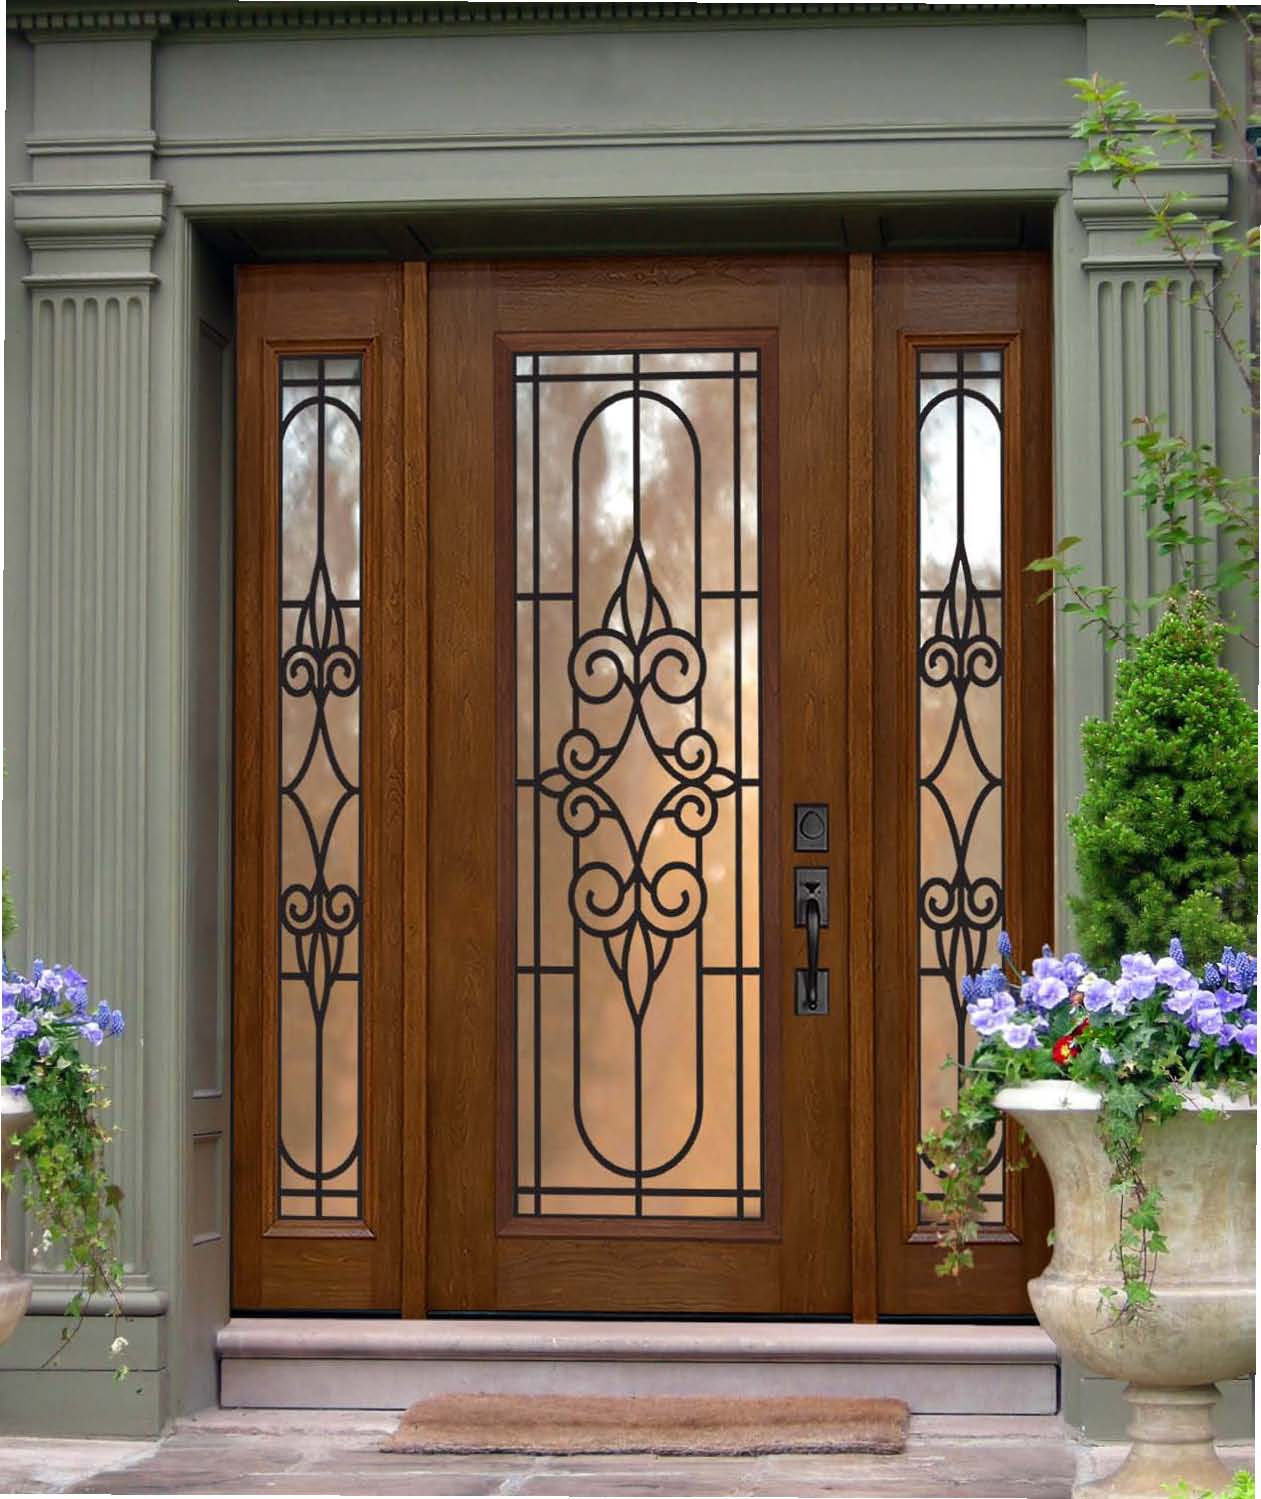 1499 #613B1E US Door And More Inc.: Make Your Entry Door Trendy With Sidelights picture/photo Entry Doors With Sidelights 41991261